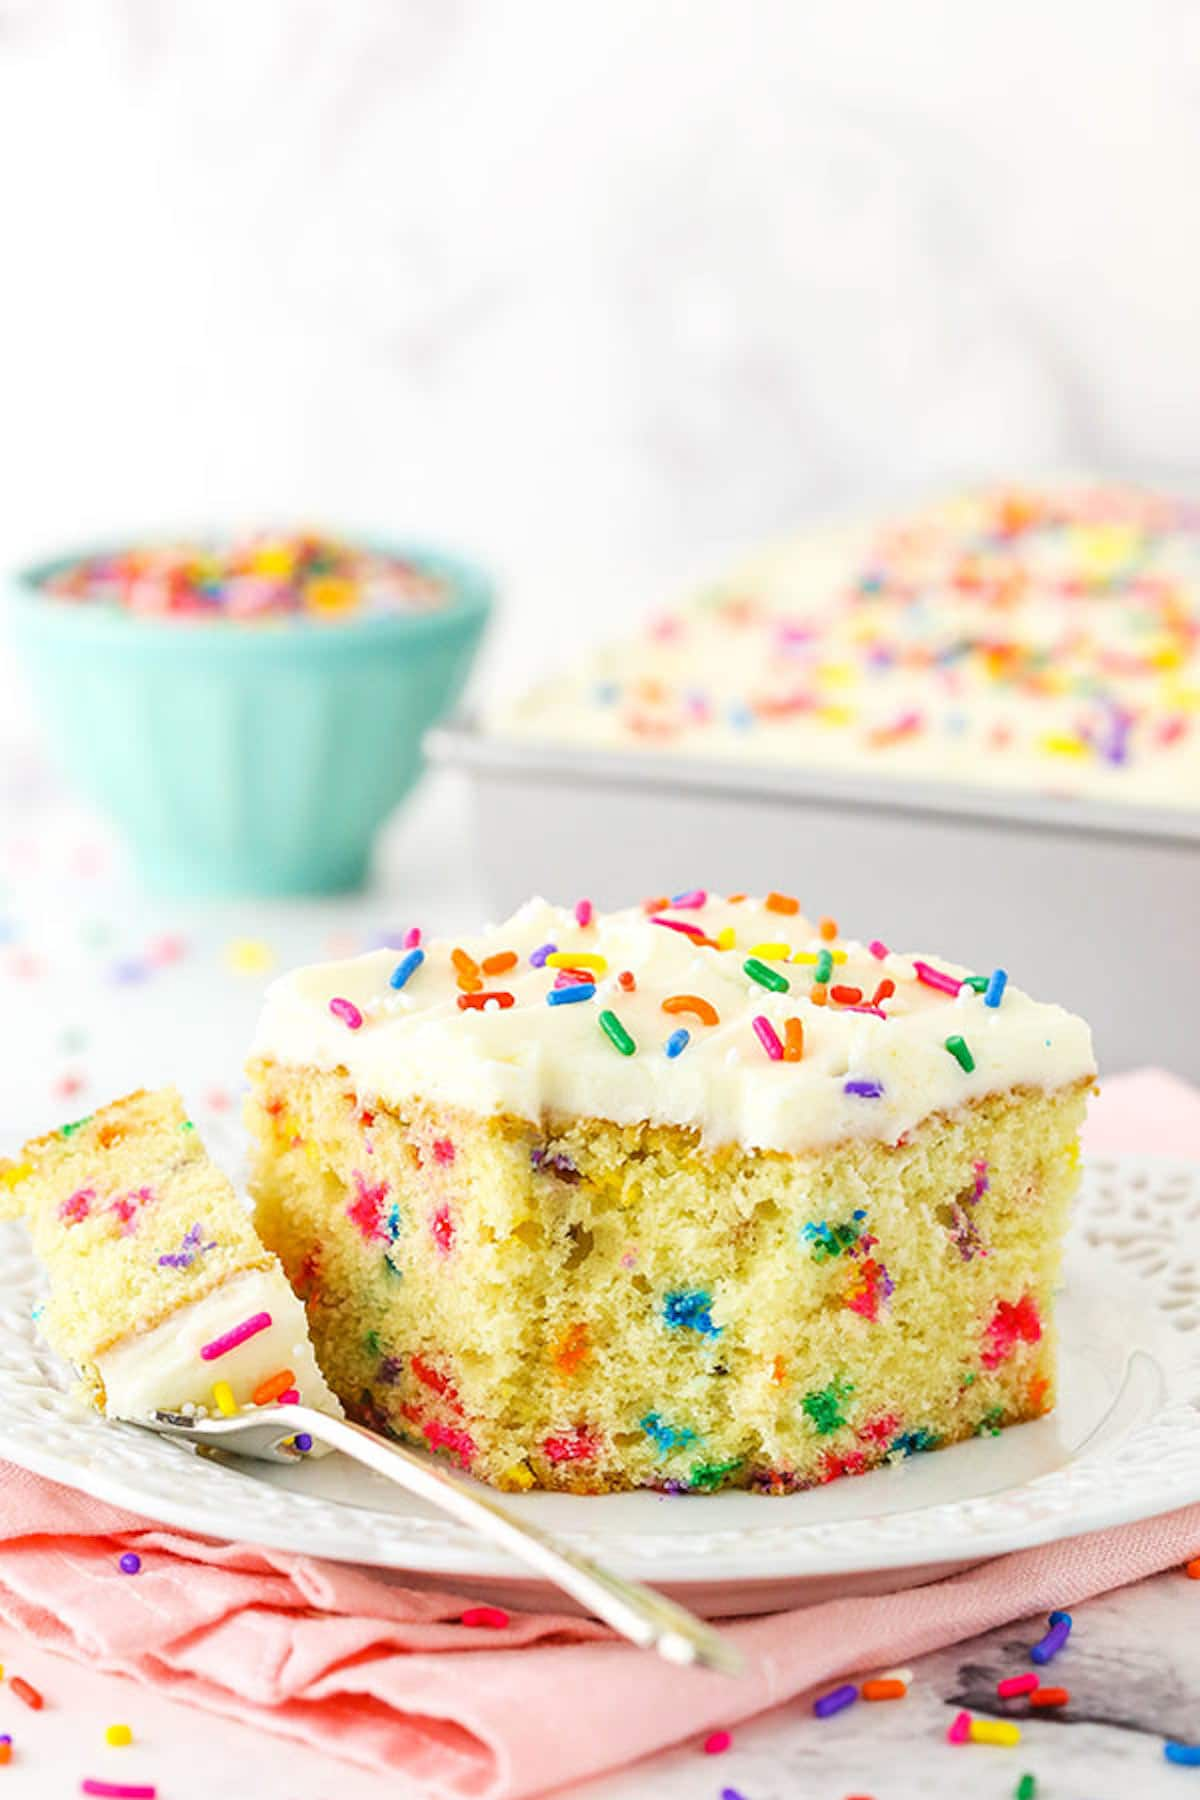 A Square Slice of Funfetti Cake with One Bite on a Metal Fork